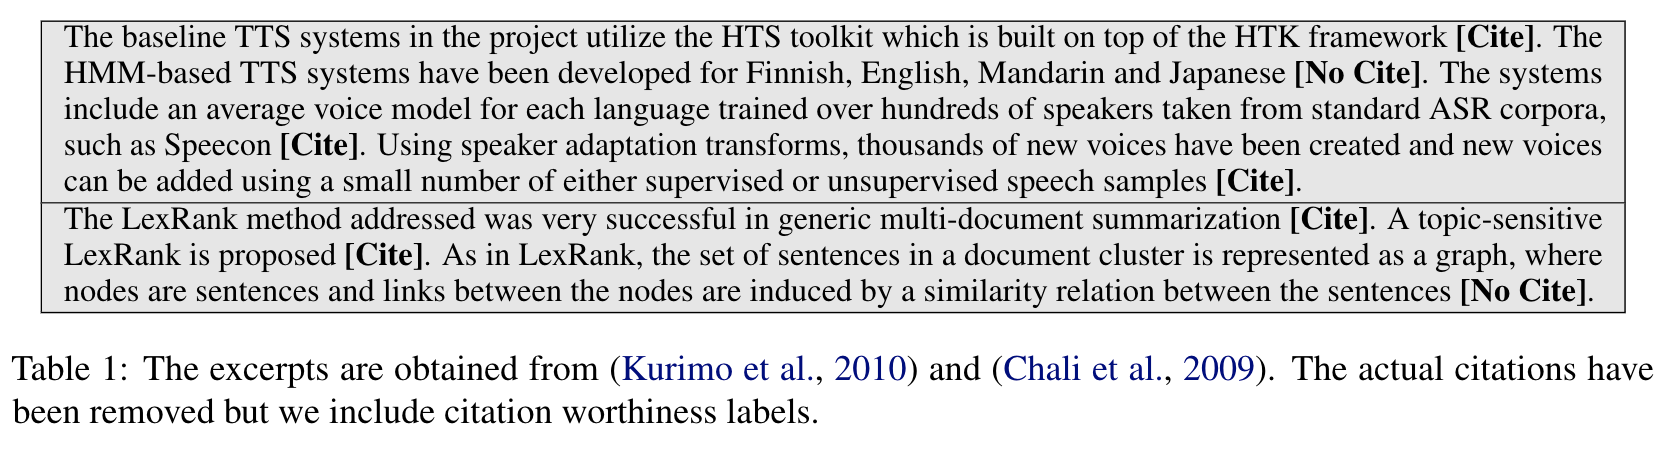 Table 1. Sentences with the [Cite] tag are the ones that provide citation to another work